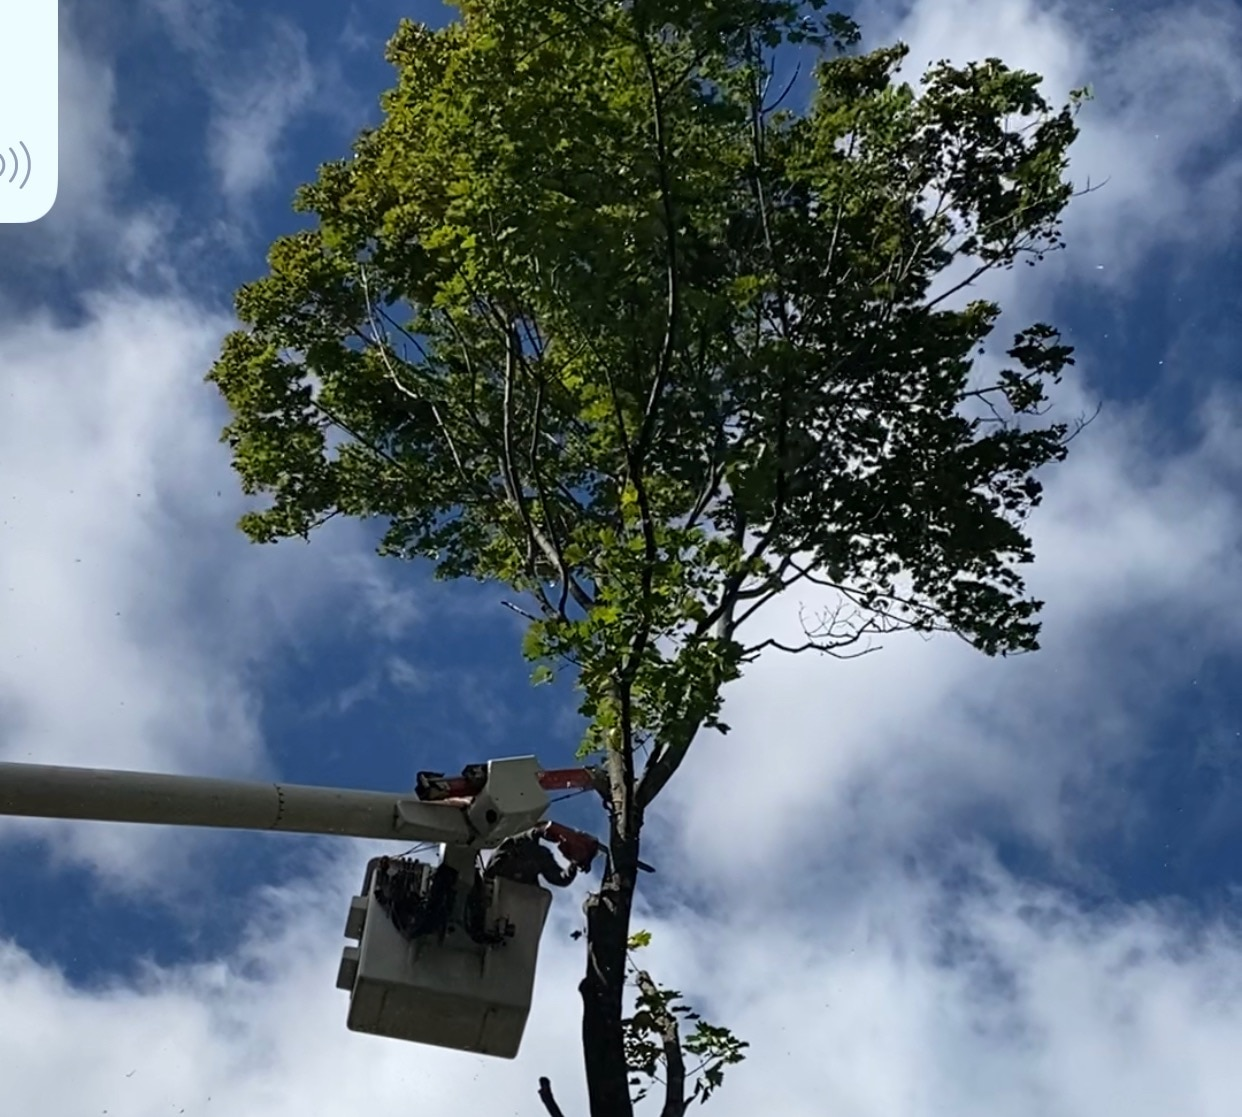 Hazardous tree removal done safely!